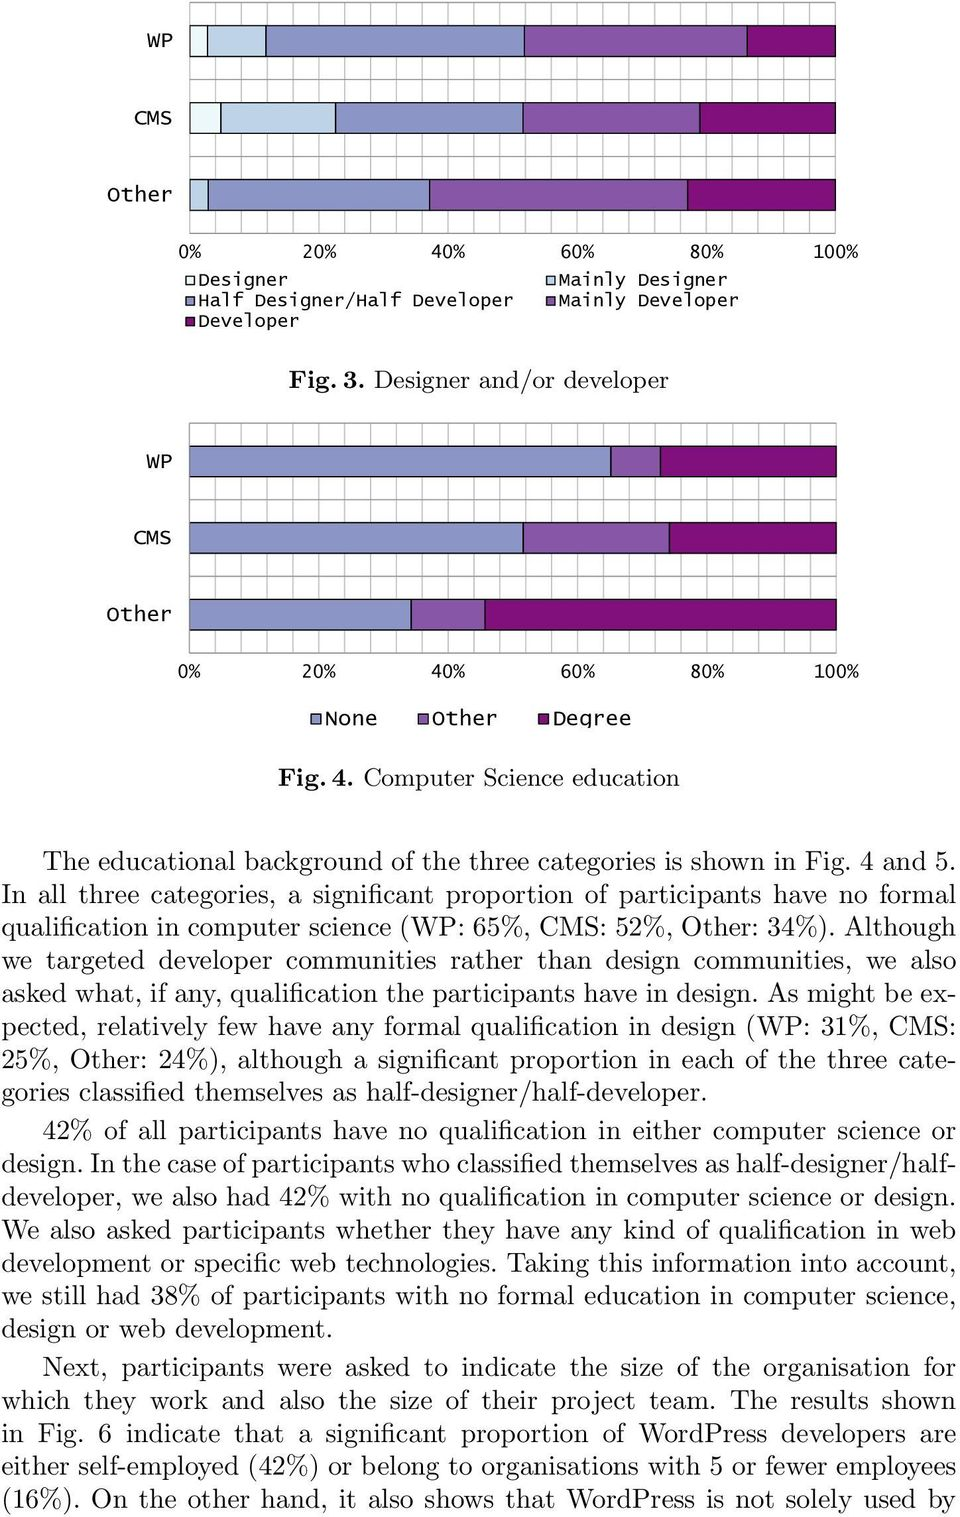 In all three categories, a significant proportion of participants have no formal qualification in computer science (WP: 65%, : 52%, : 34%).